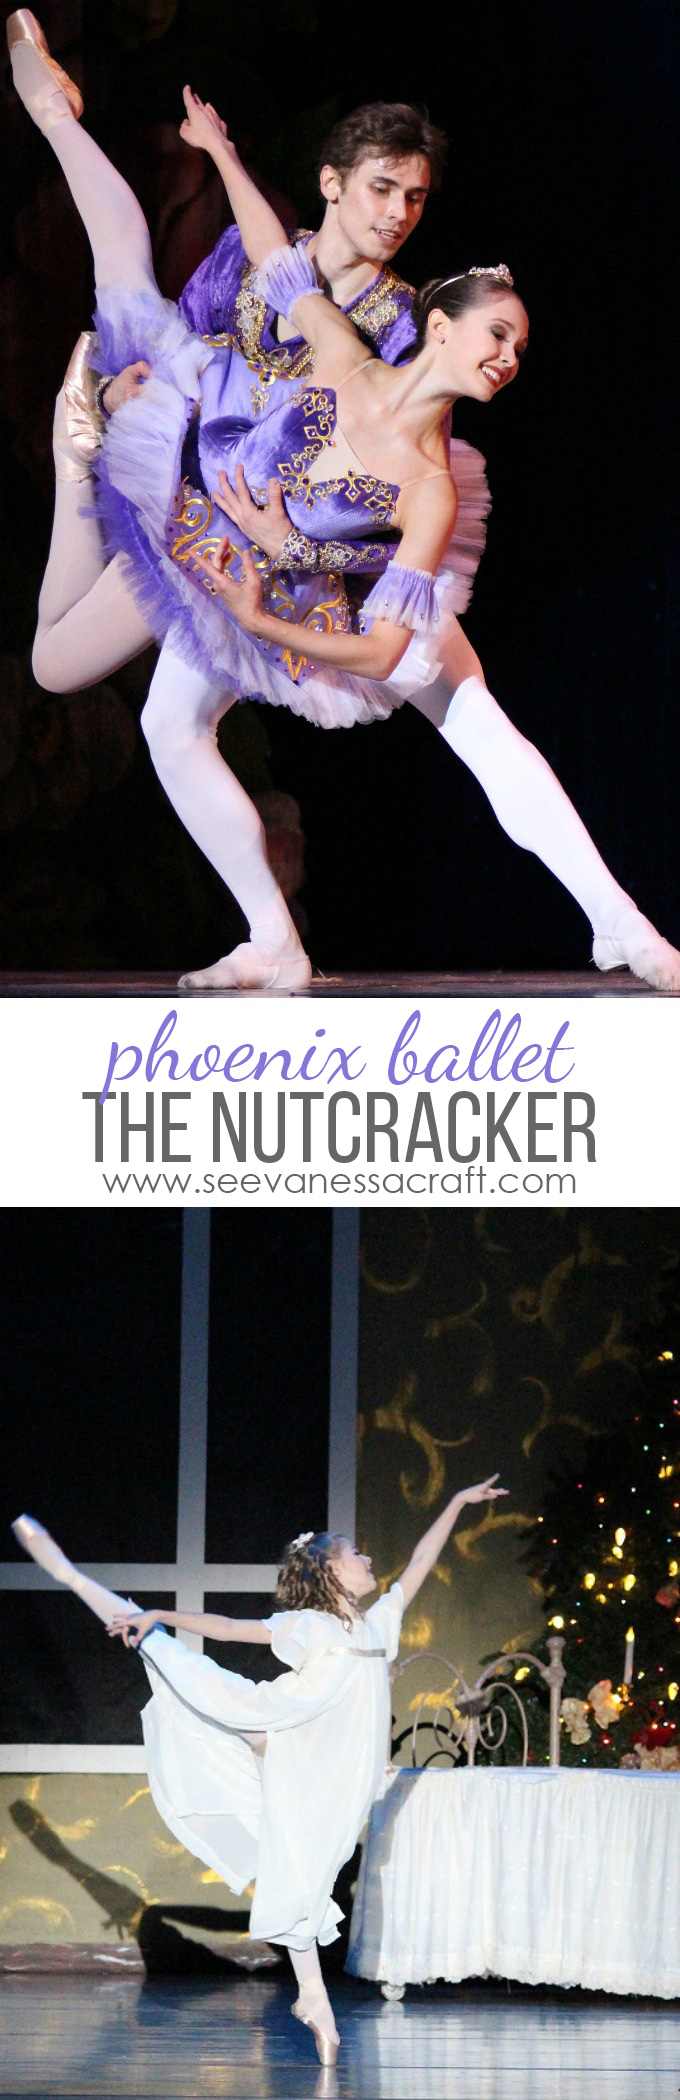 phoenix-ballet-the-nutracker-arizona-phoenix-copy